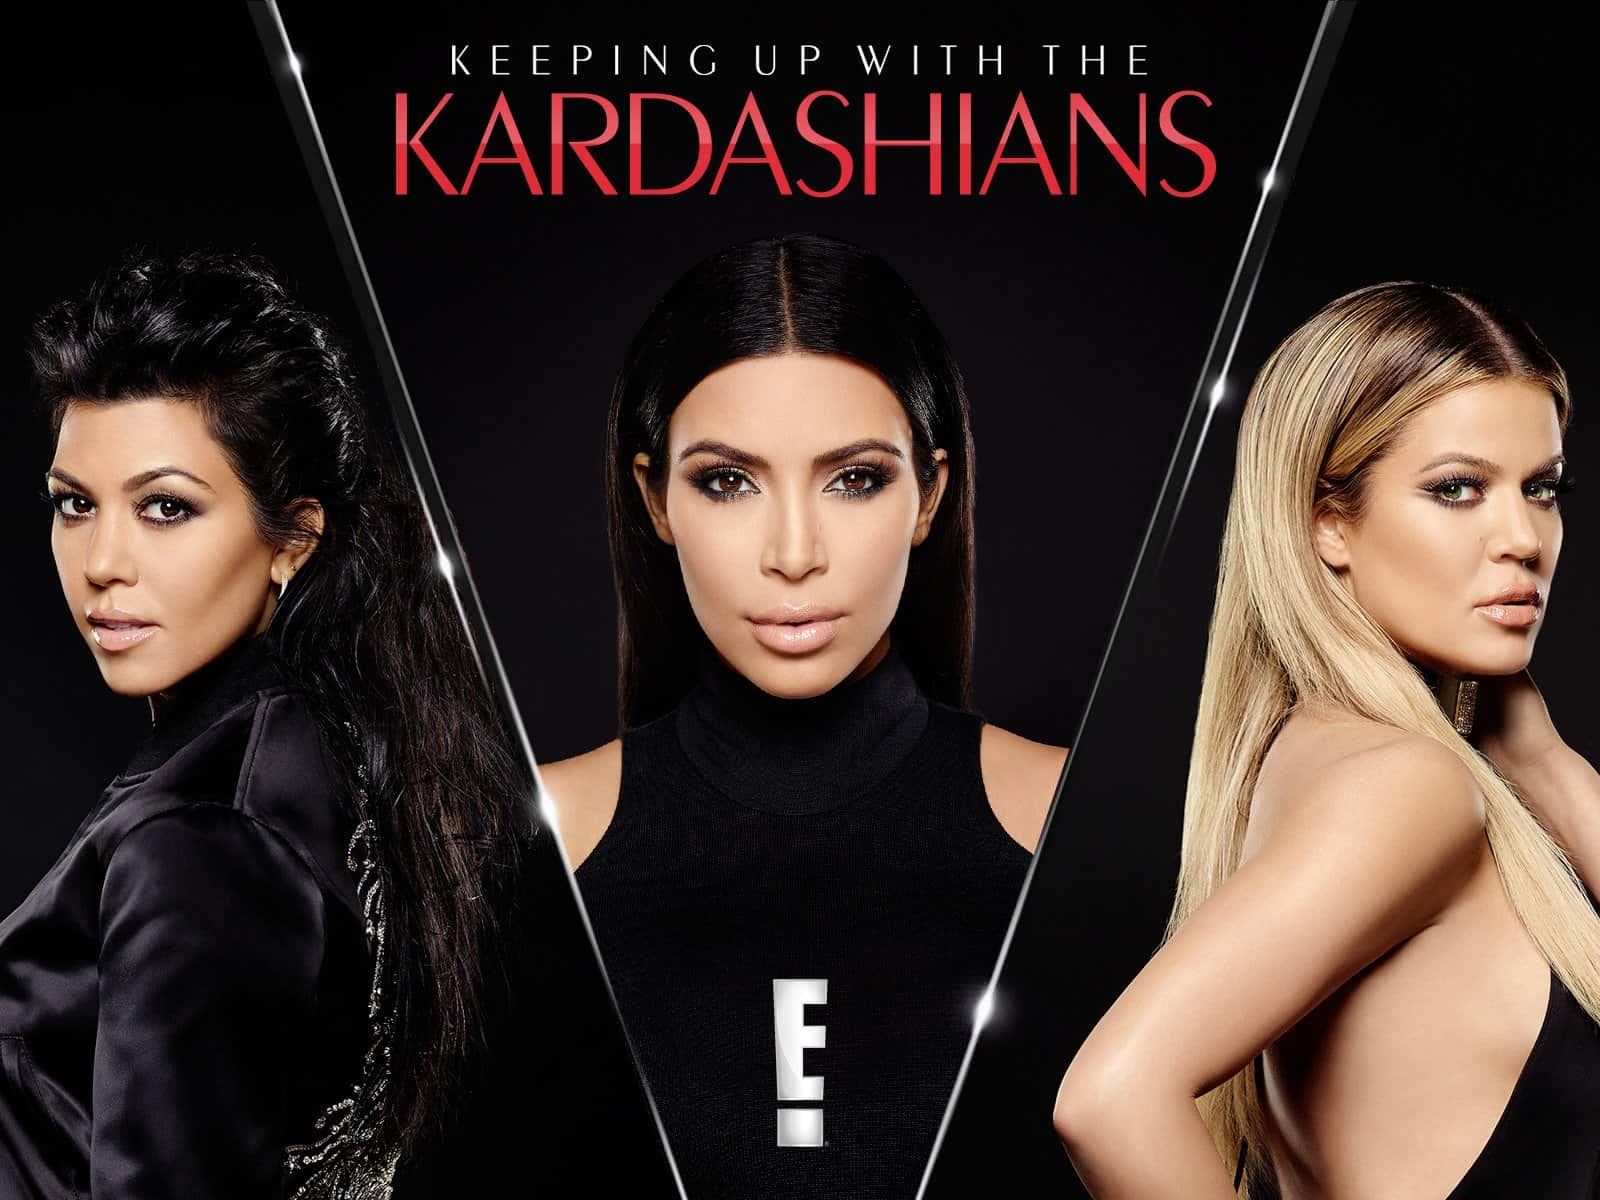 Celebrity Talent - Khloe Kardashian - Kim Kardashian - Kourtney Kardashian